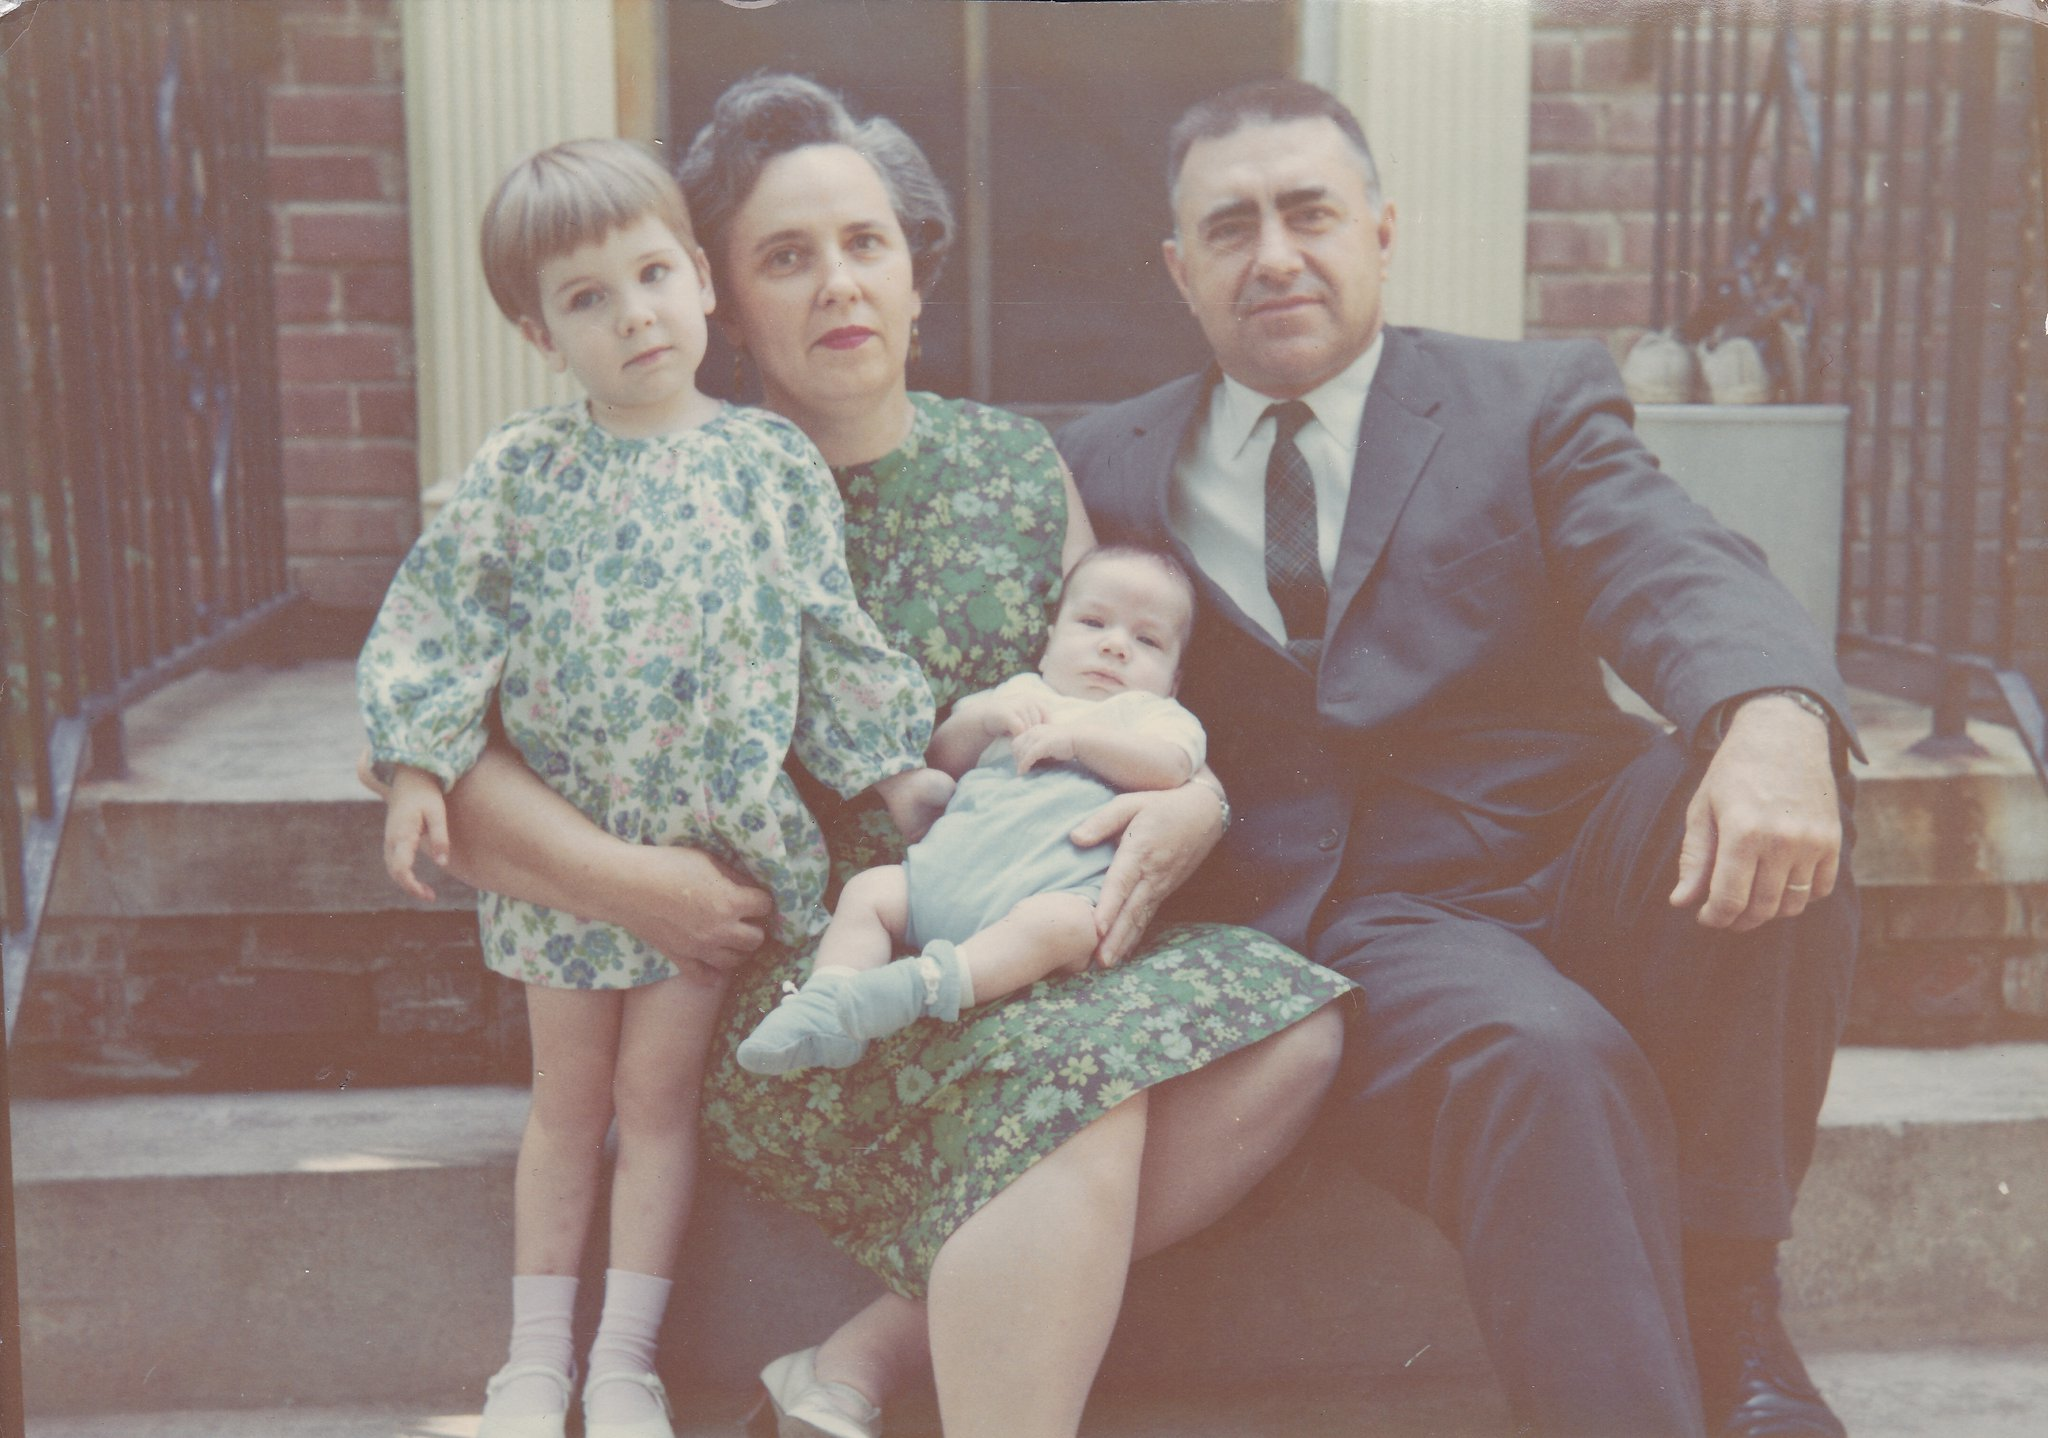 (left to right) Jon (me), Grandma Doris, Danny (my younger brother), Grandpa Ralph (Arlington, Virginia - June 1968)